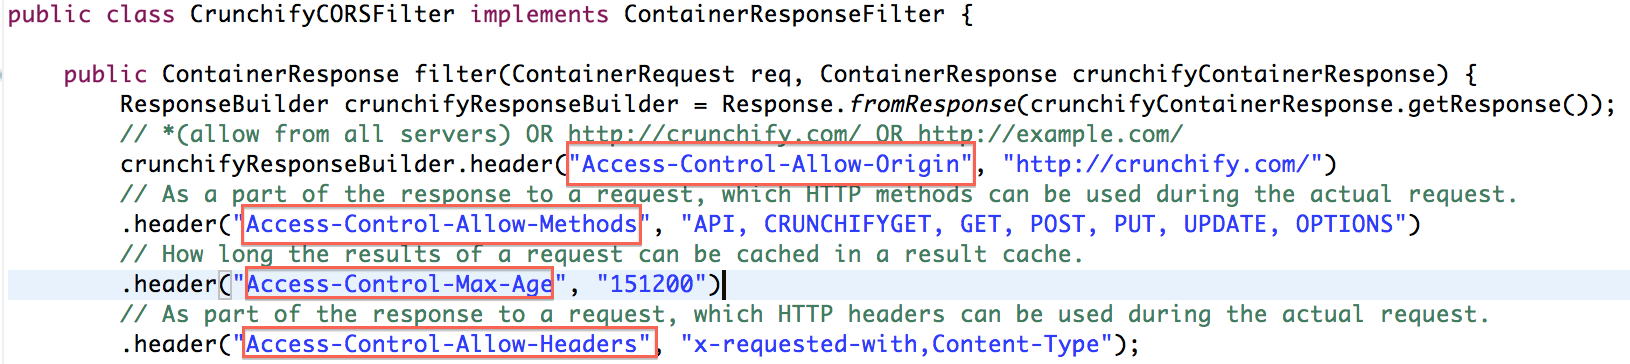 Crunchify CORSFilter Jersey Server Example